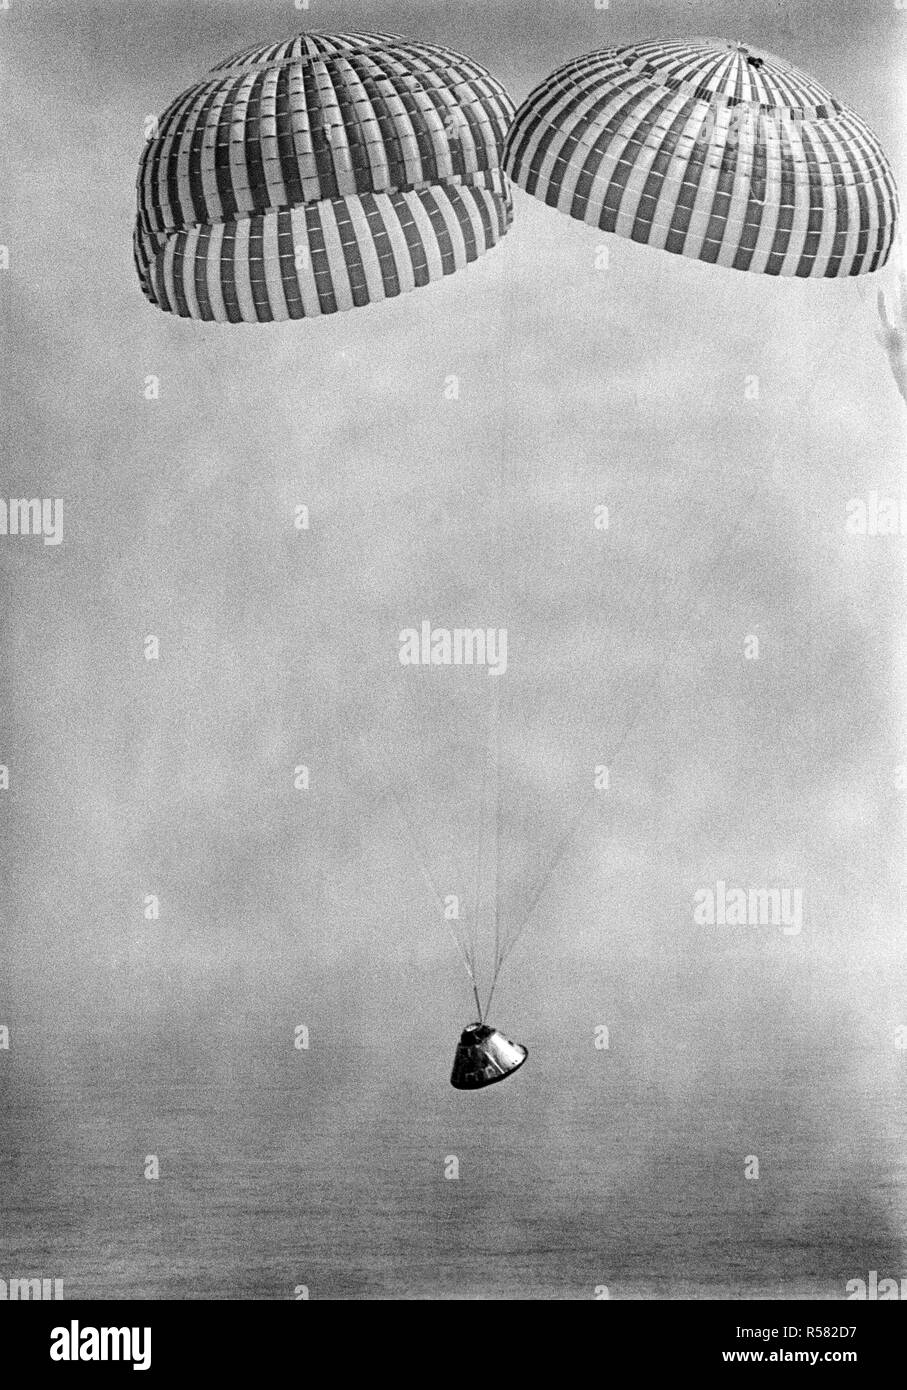 (13 March 1969) --- The Apollo 9 spacecraft, with astronauts James A. McDivitt, David R. Scott, and Russell L. Schweickart aboard, approaches touchdown in the Atlantic recovery area. Splashdown occurred at 12:00:53 p.m. (EST), March 13, 1969, only 4.5 nautical miles from the prime recovery ship, USS Guadalcanal. - Stock Image